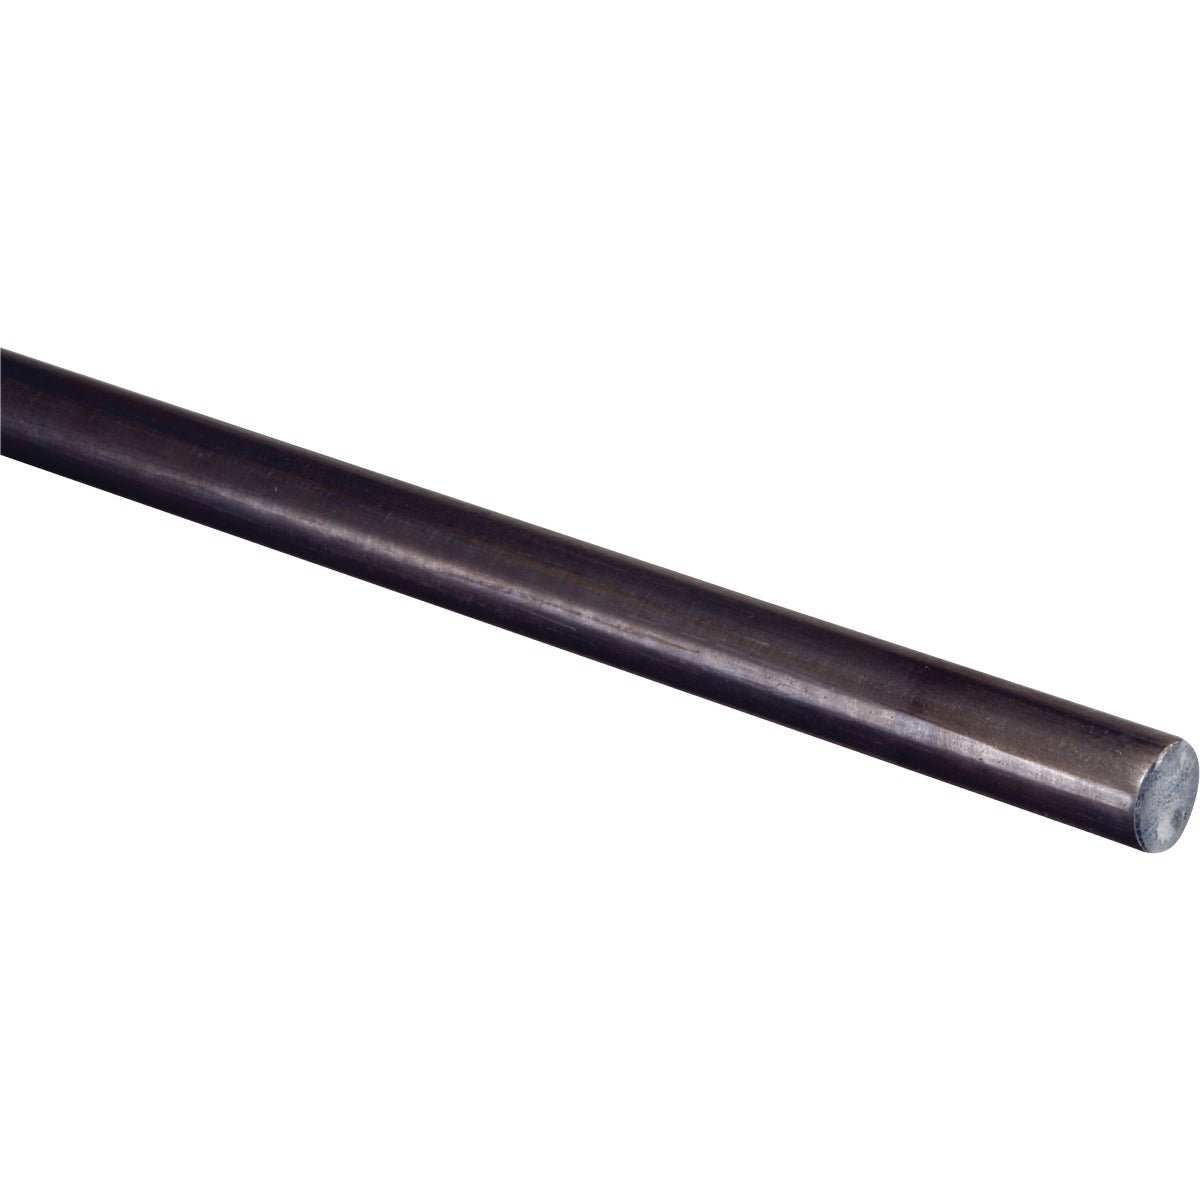 1/4X4' CR RND STEEL ROD - N215319 by National Mfg Co